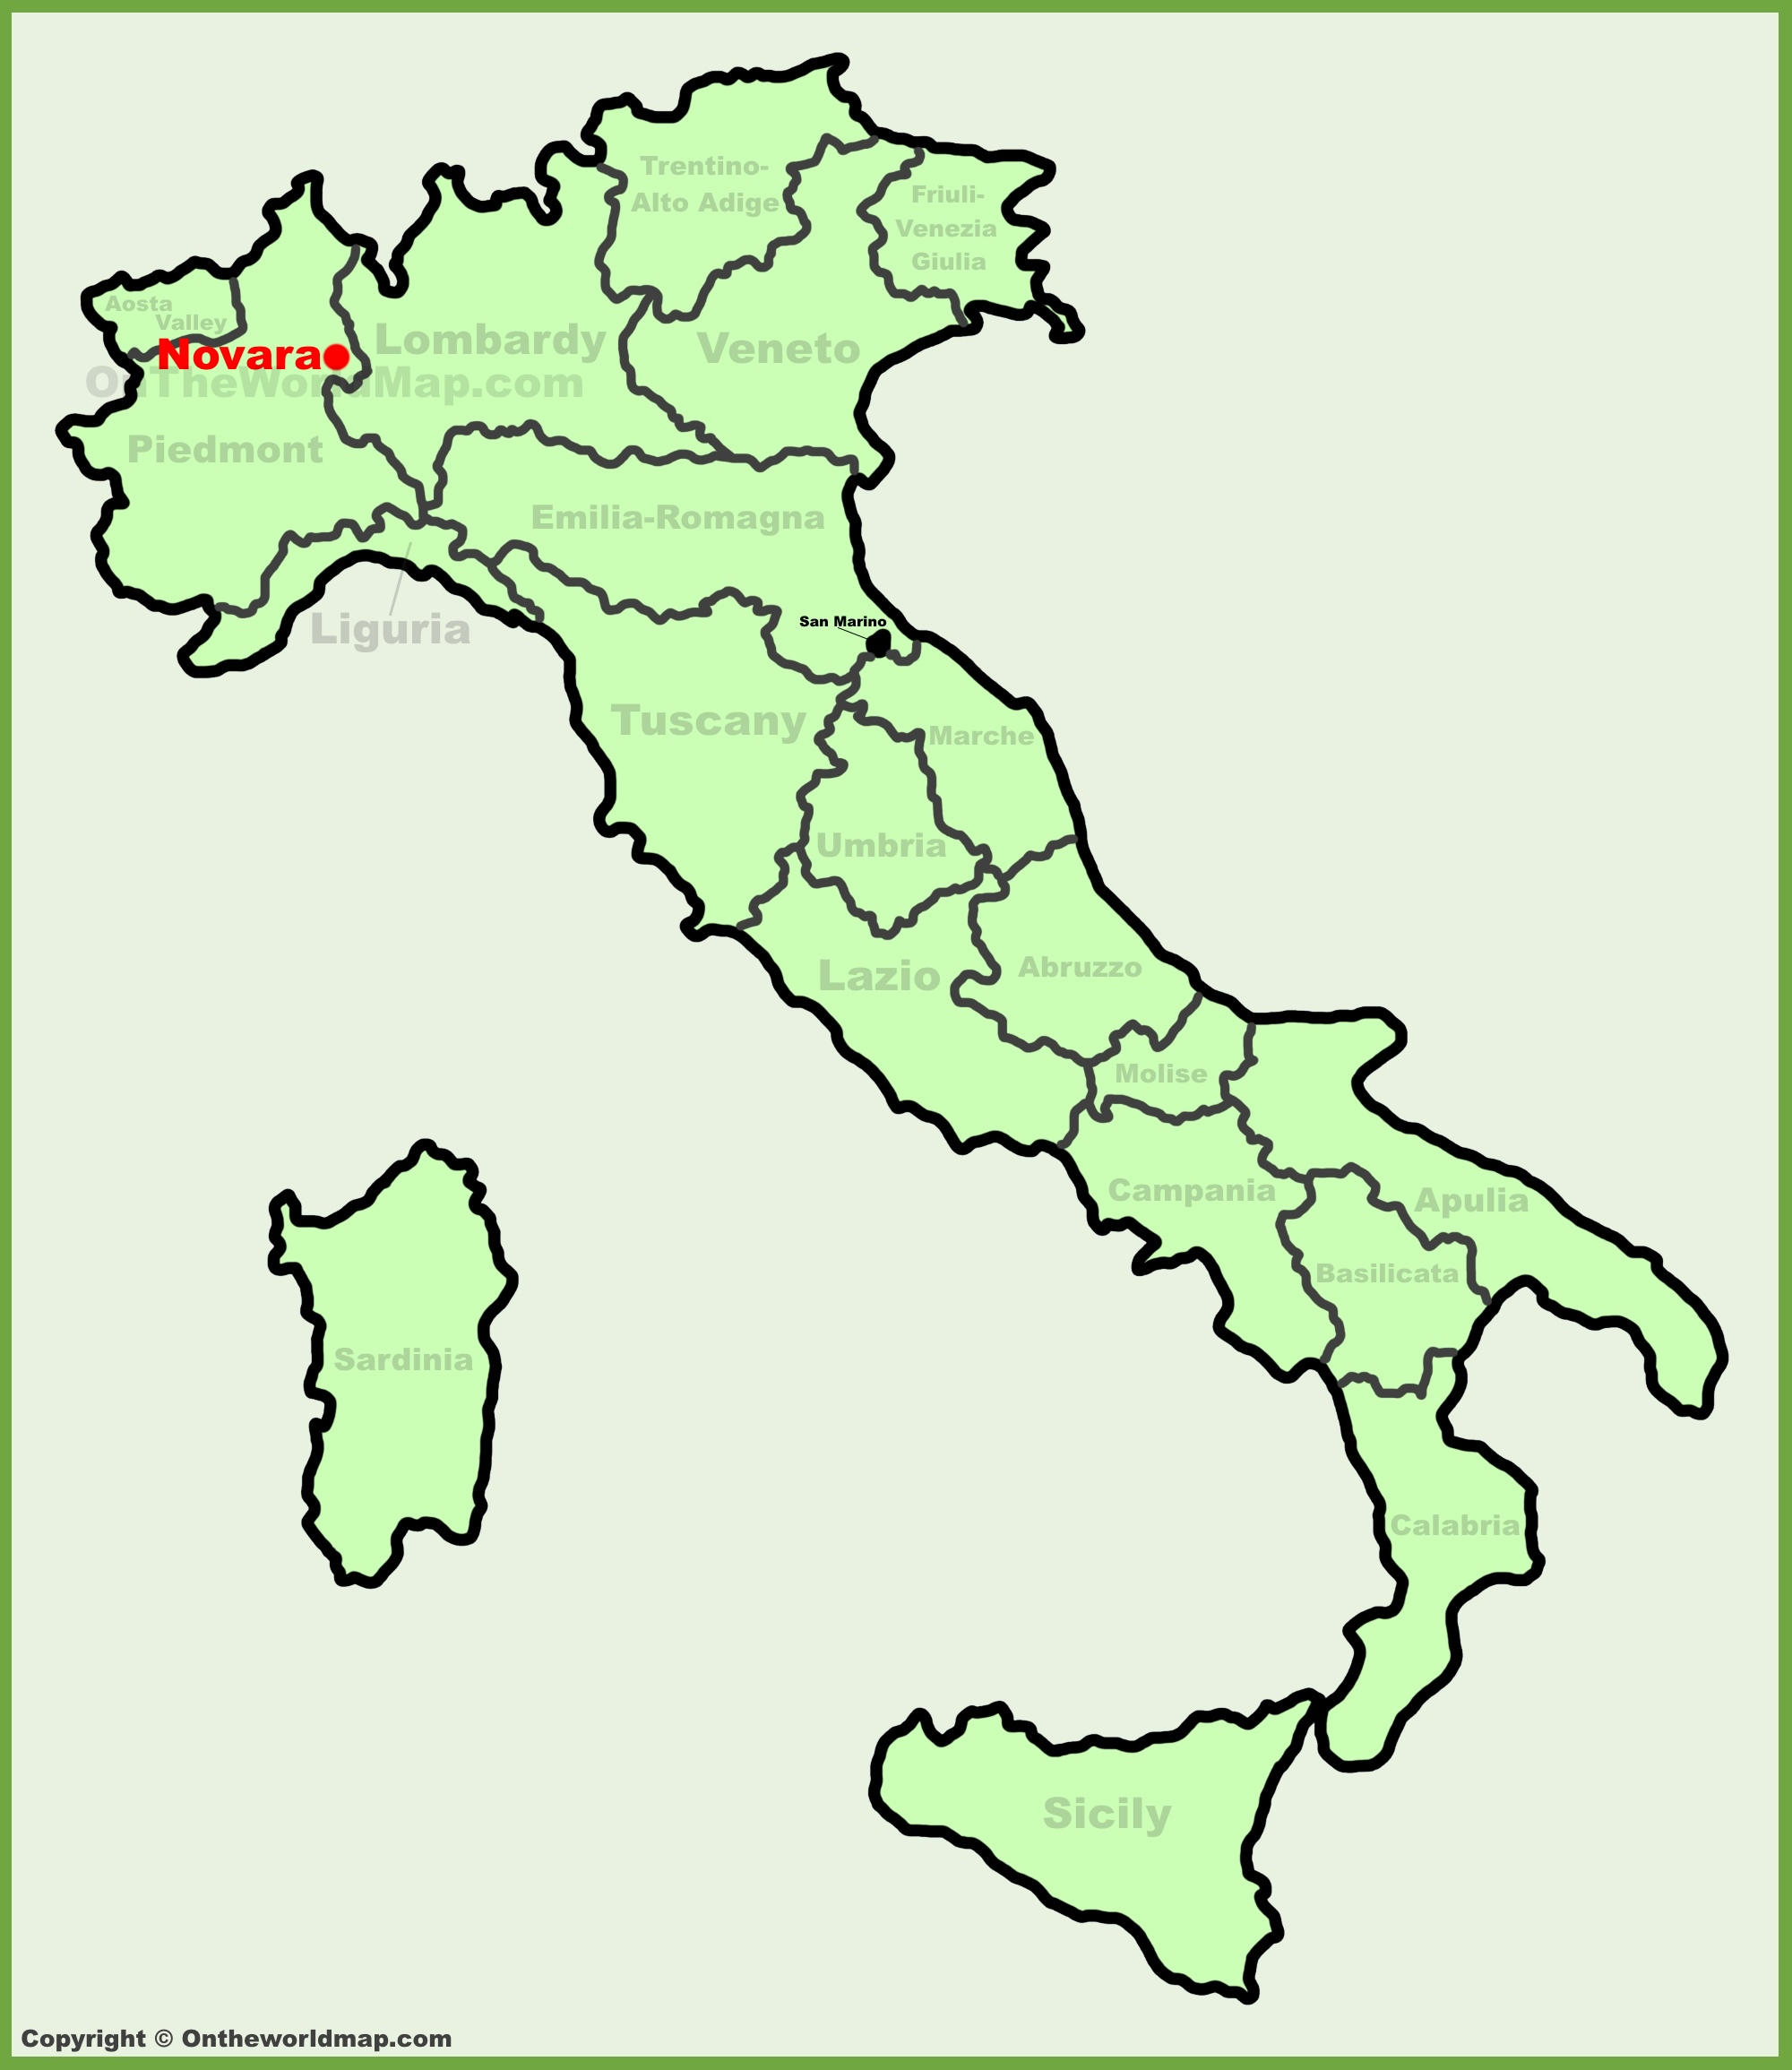 Novara location on the Italy map